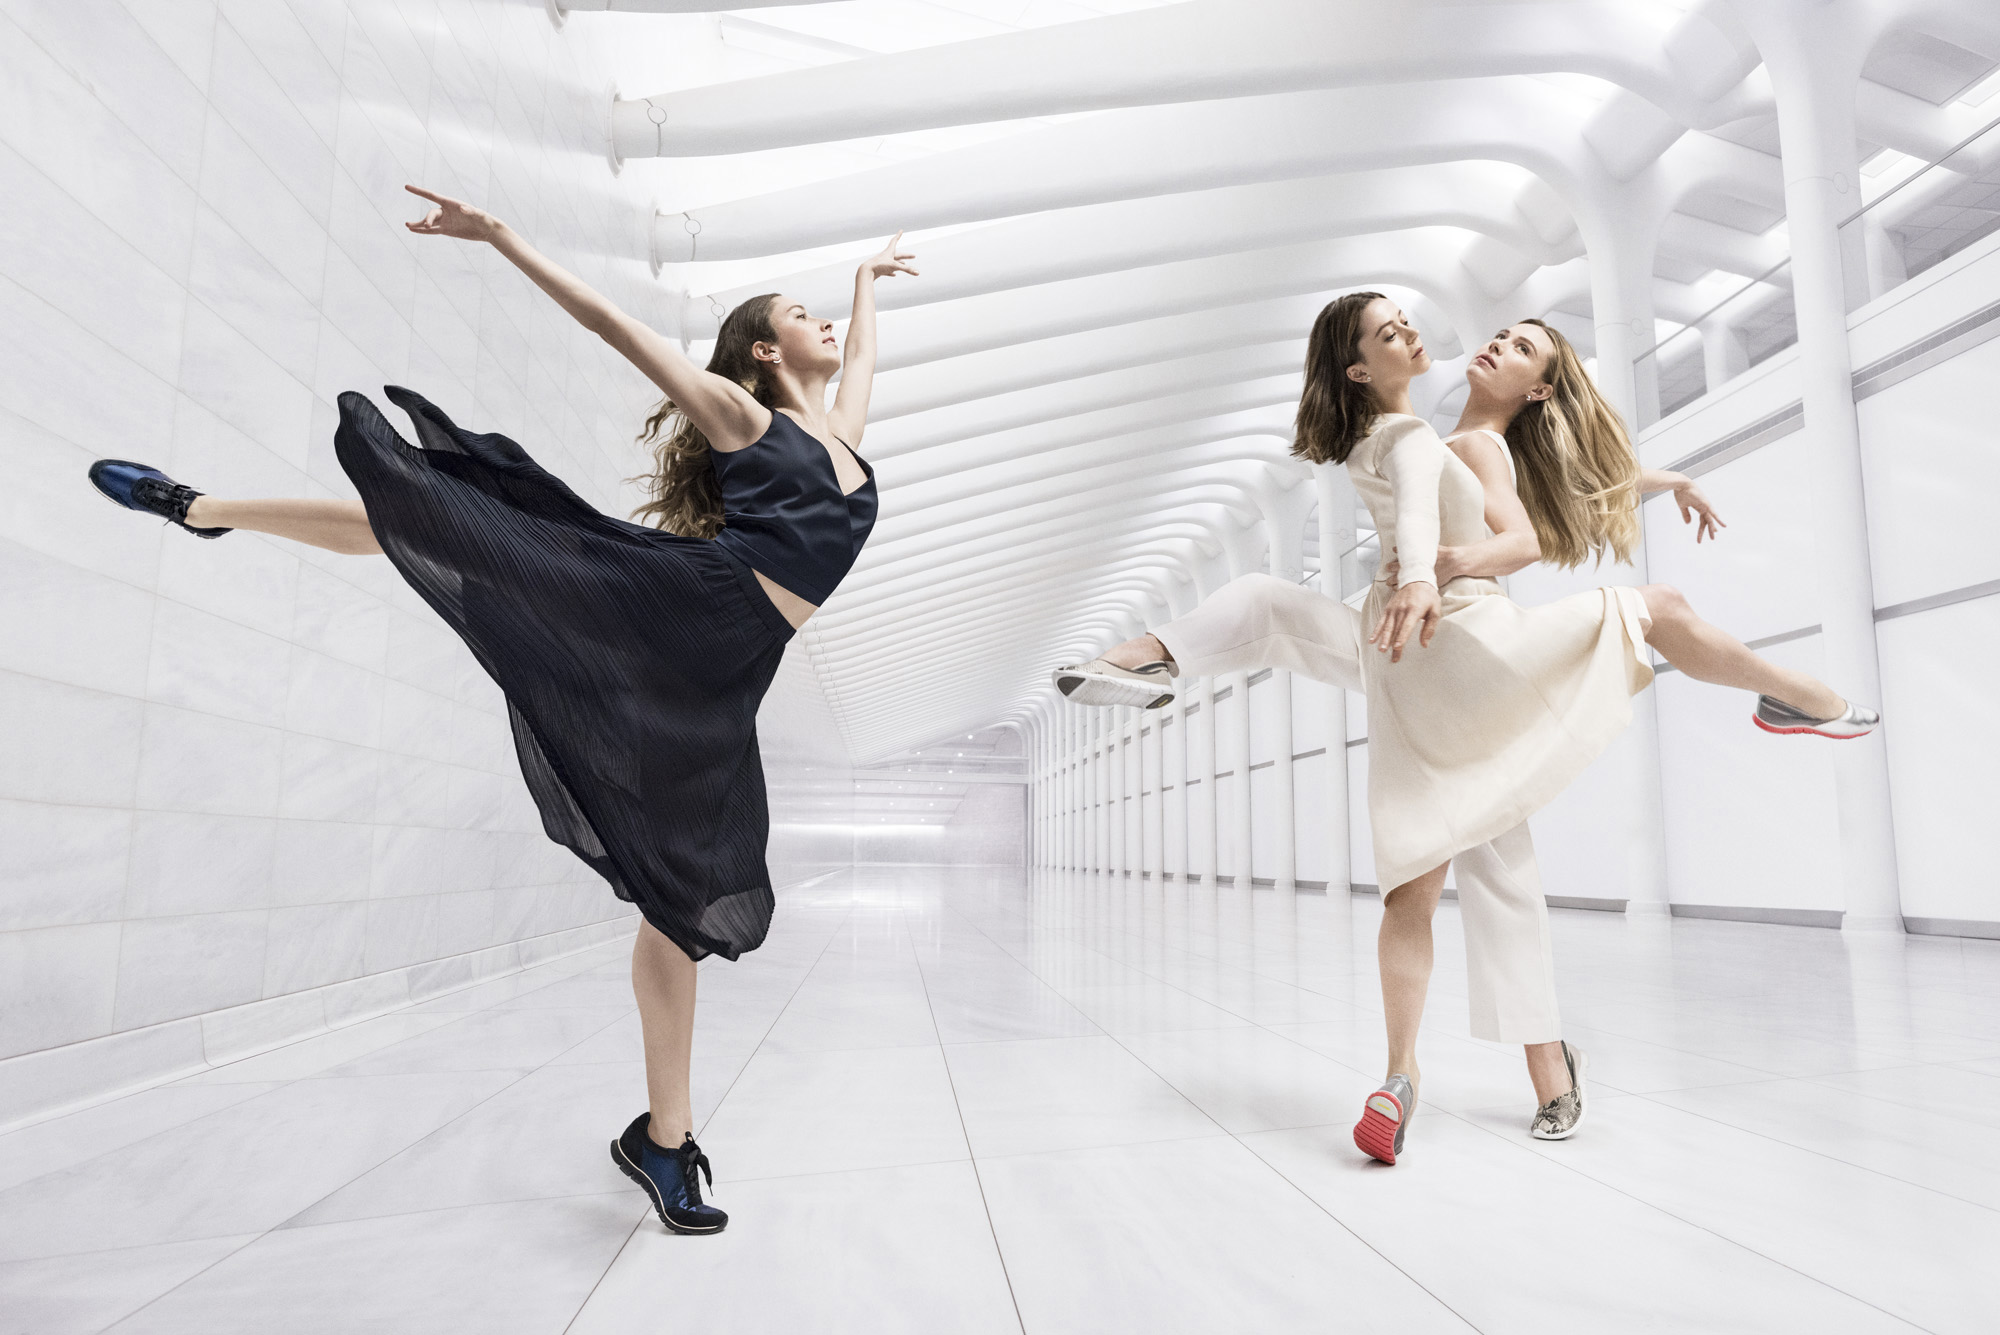 Cole Haan Spring 16 Campaign – The Art of Elegant Innovation (Gretchen Smith, Megan Fairchild, Sara Mearns)